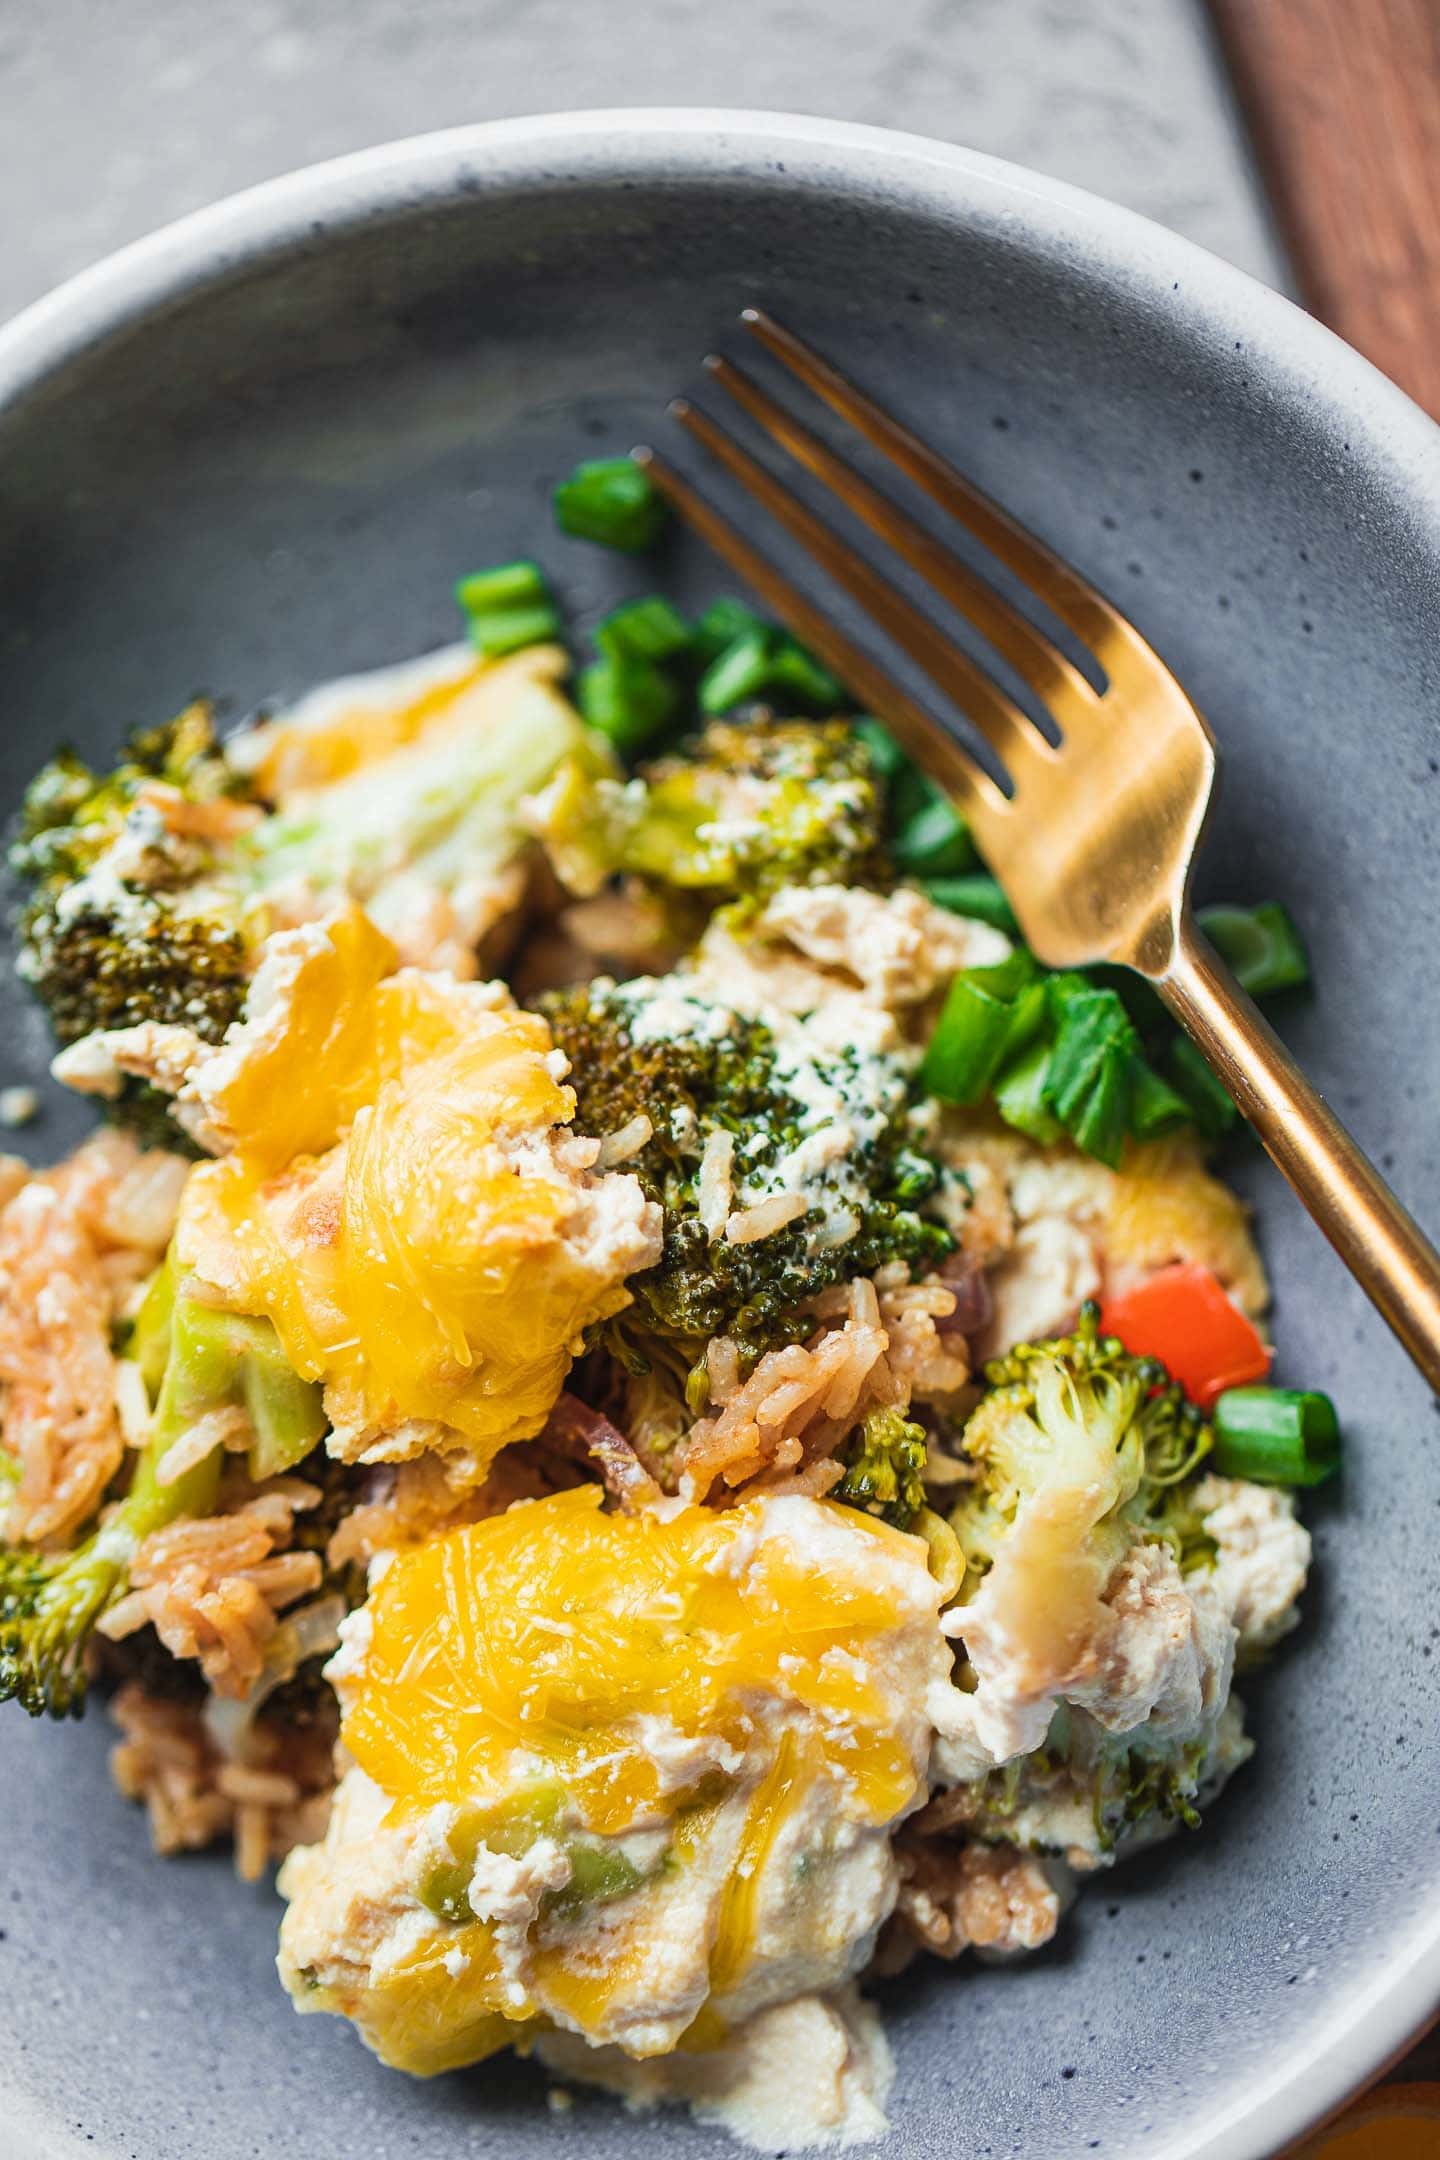 Blue bowl with vegan broccoli casserole